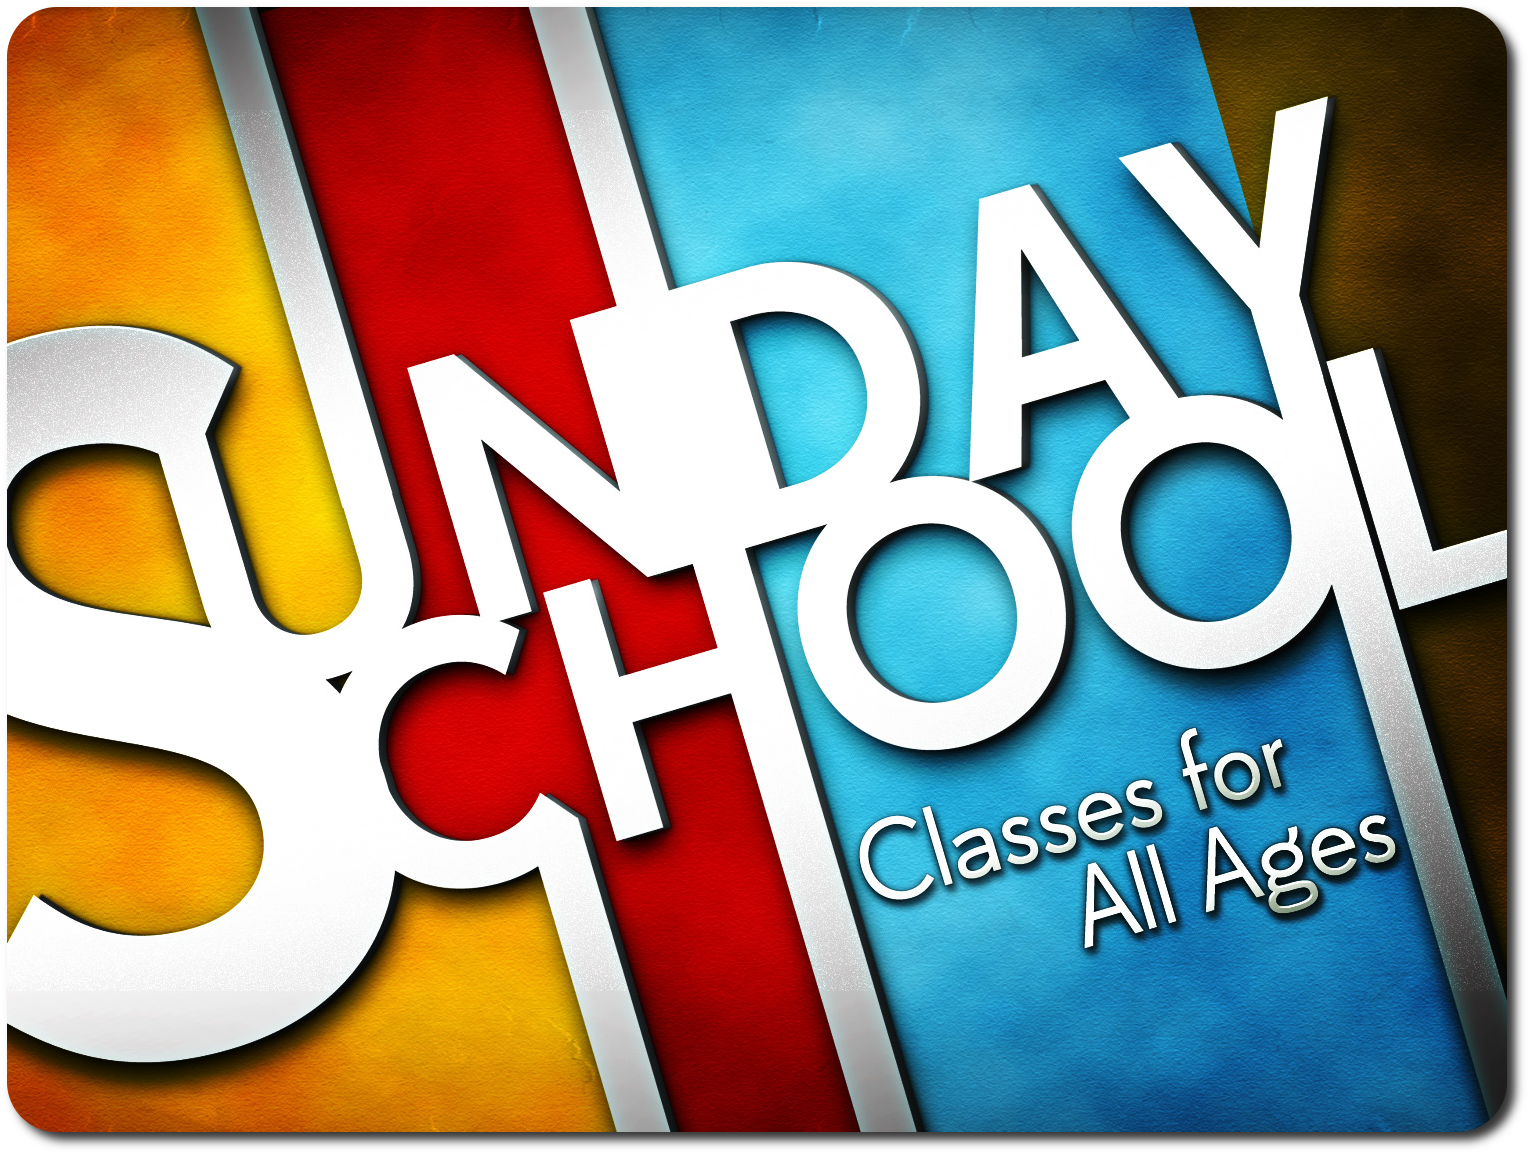 Sunday School is Back in Session!